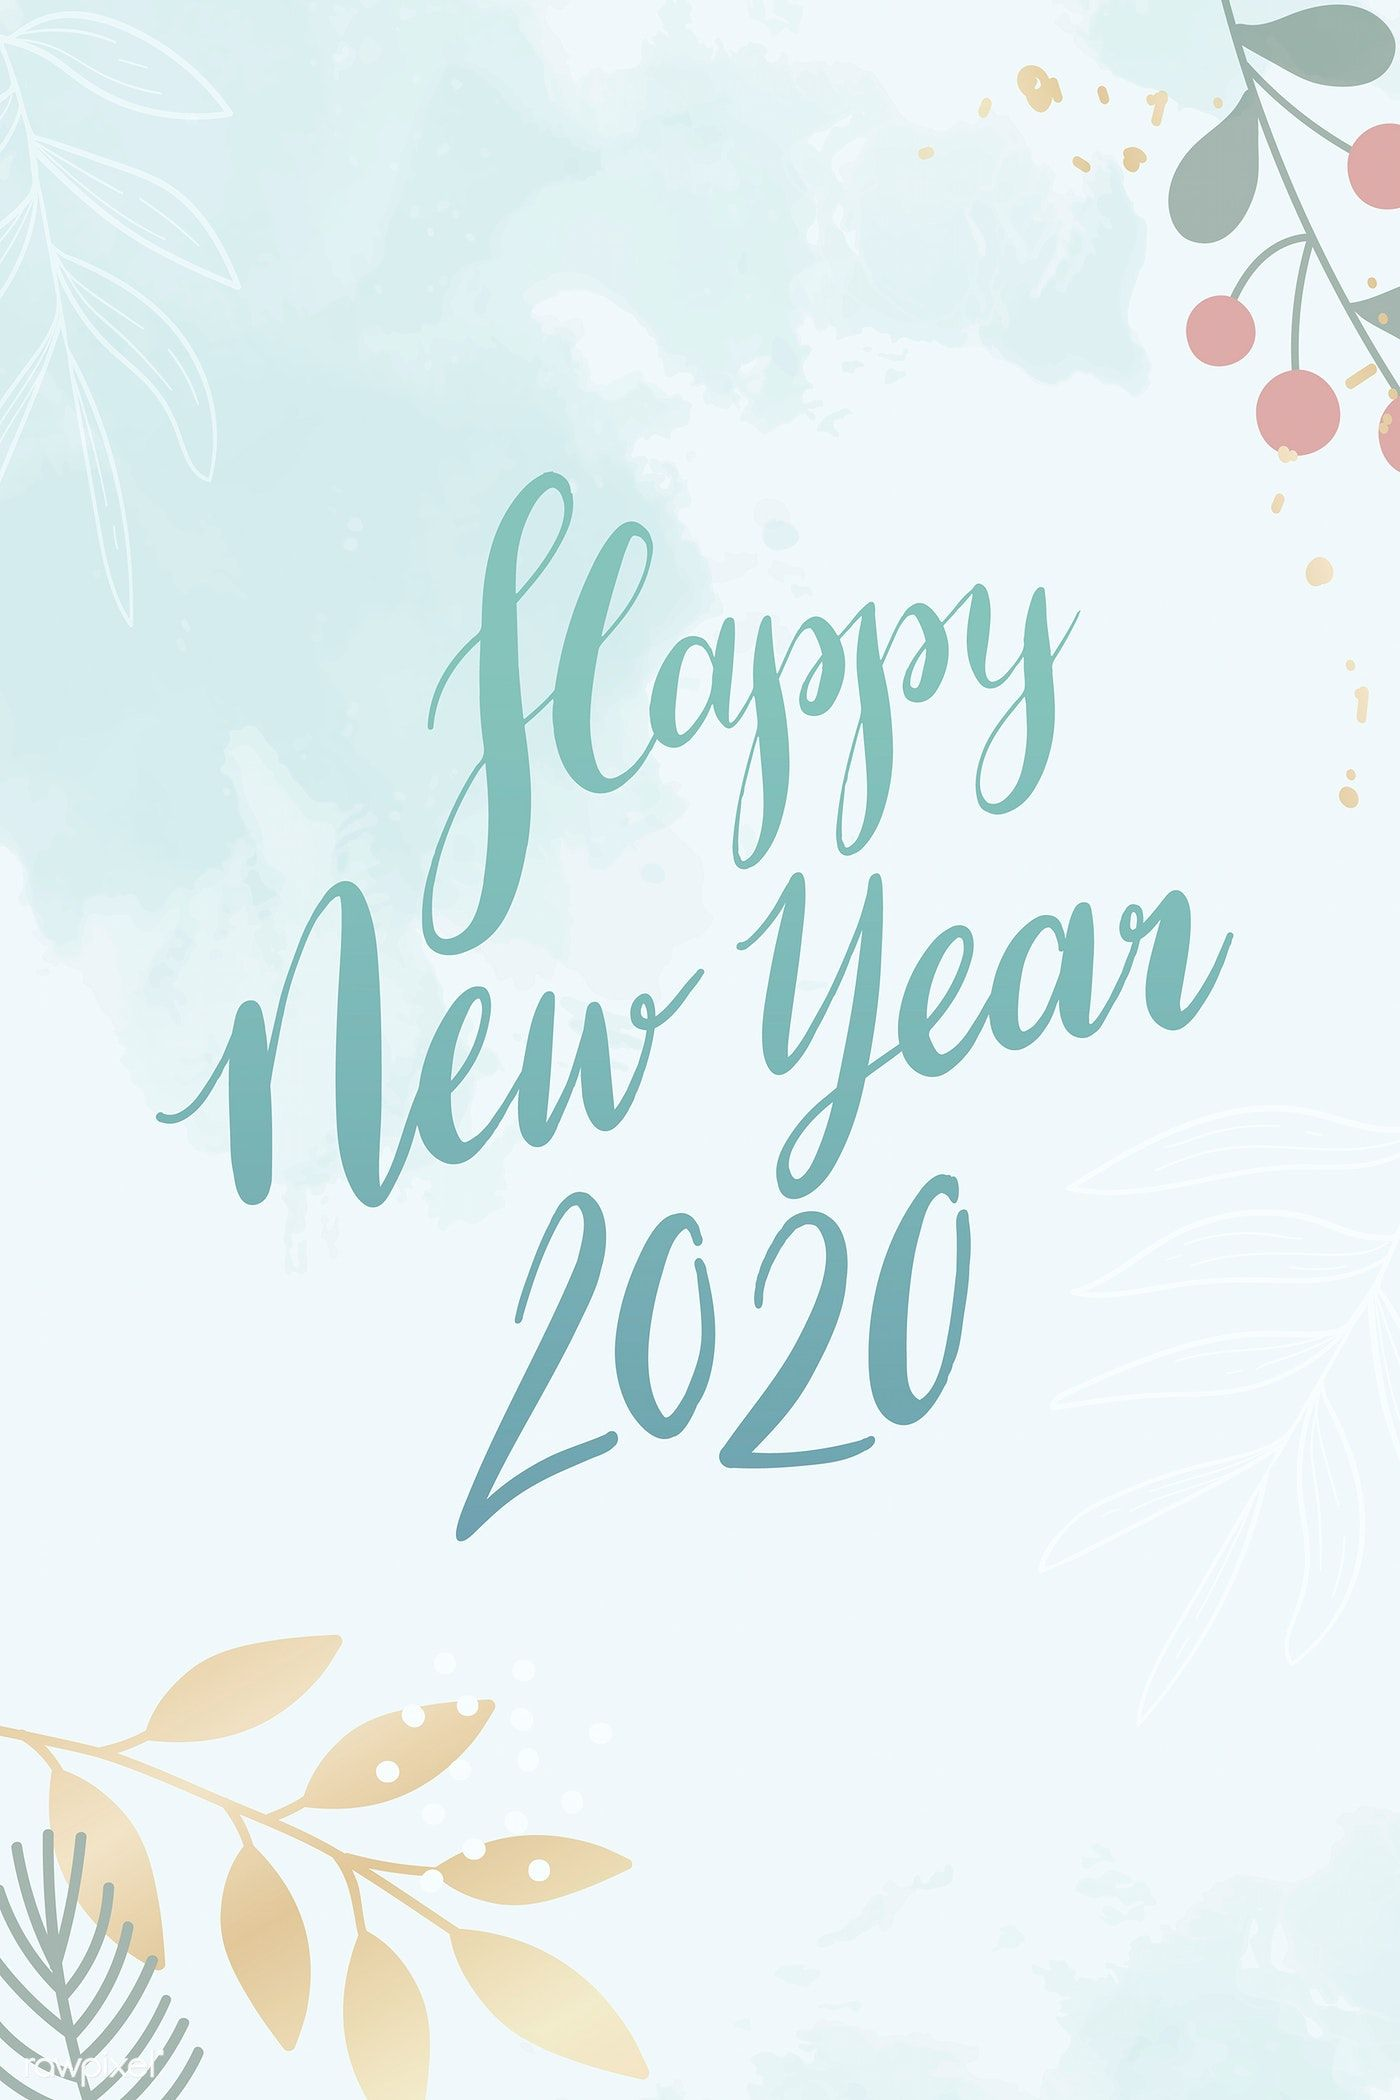 Happy new year 5 card vector  premium image by rawpixel.com